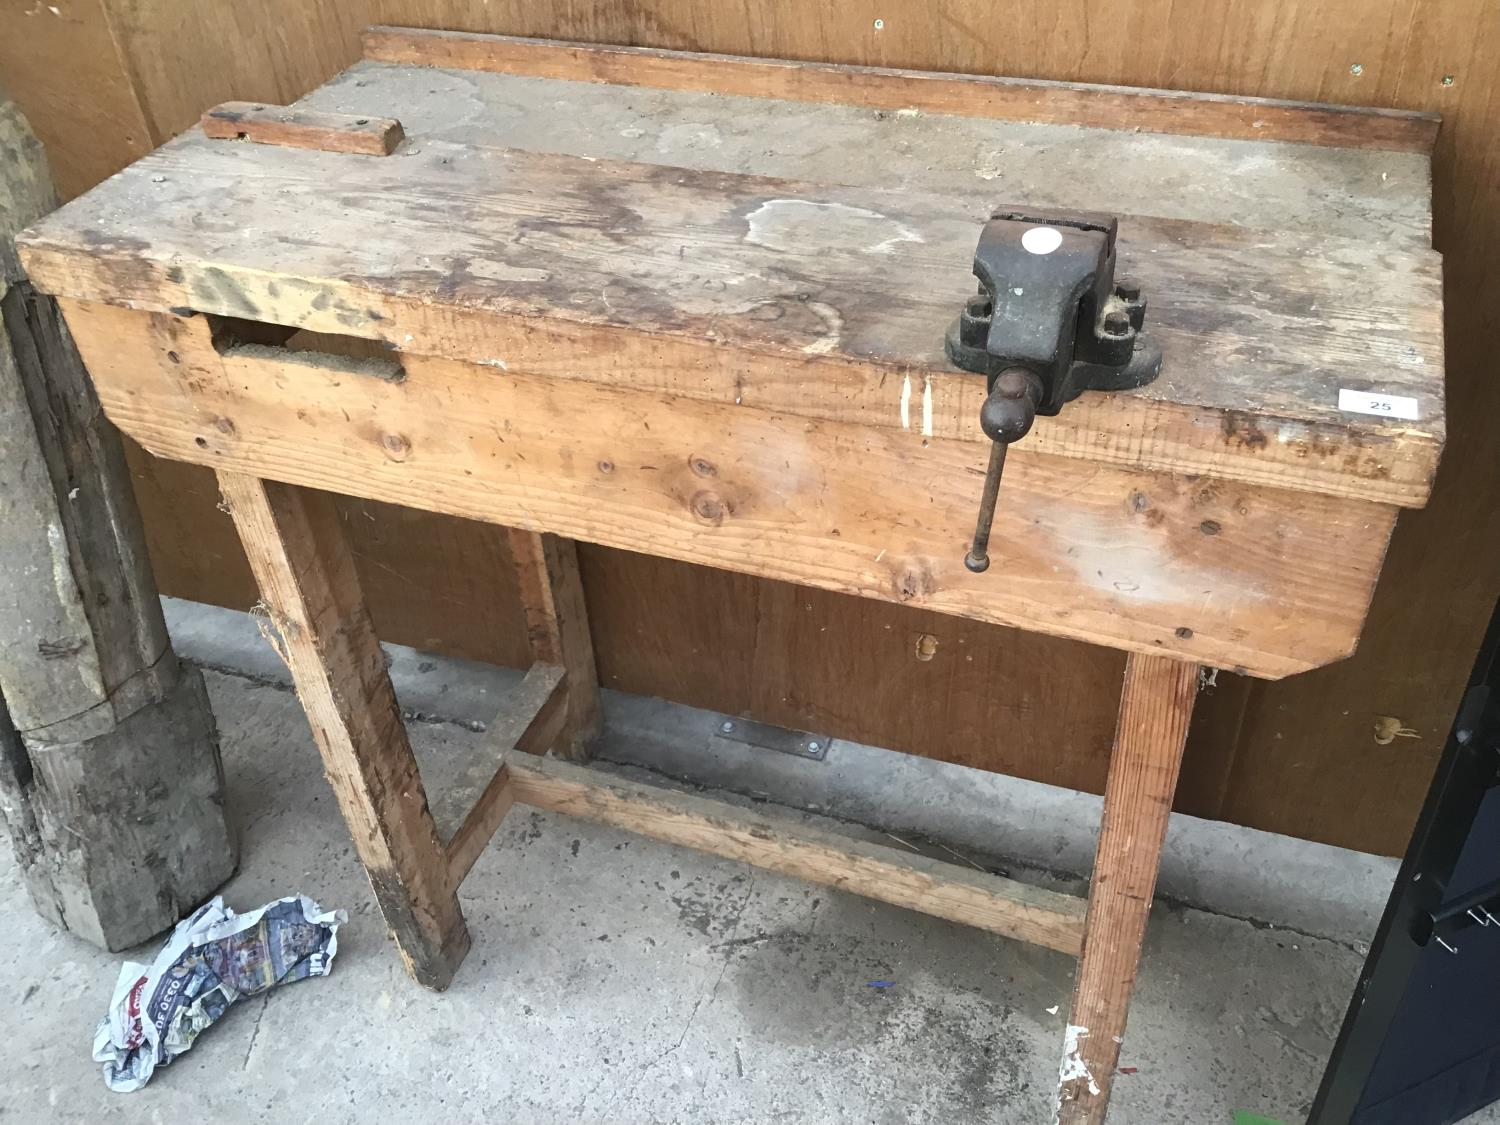 Lot 25 - A WOODEN WORK BENCH WITH SMALL VICE NO.0